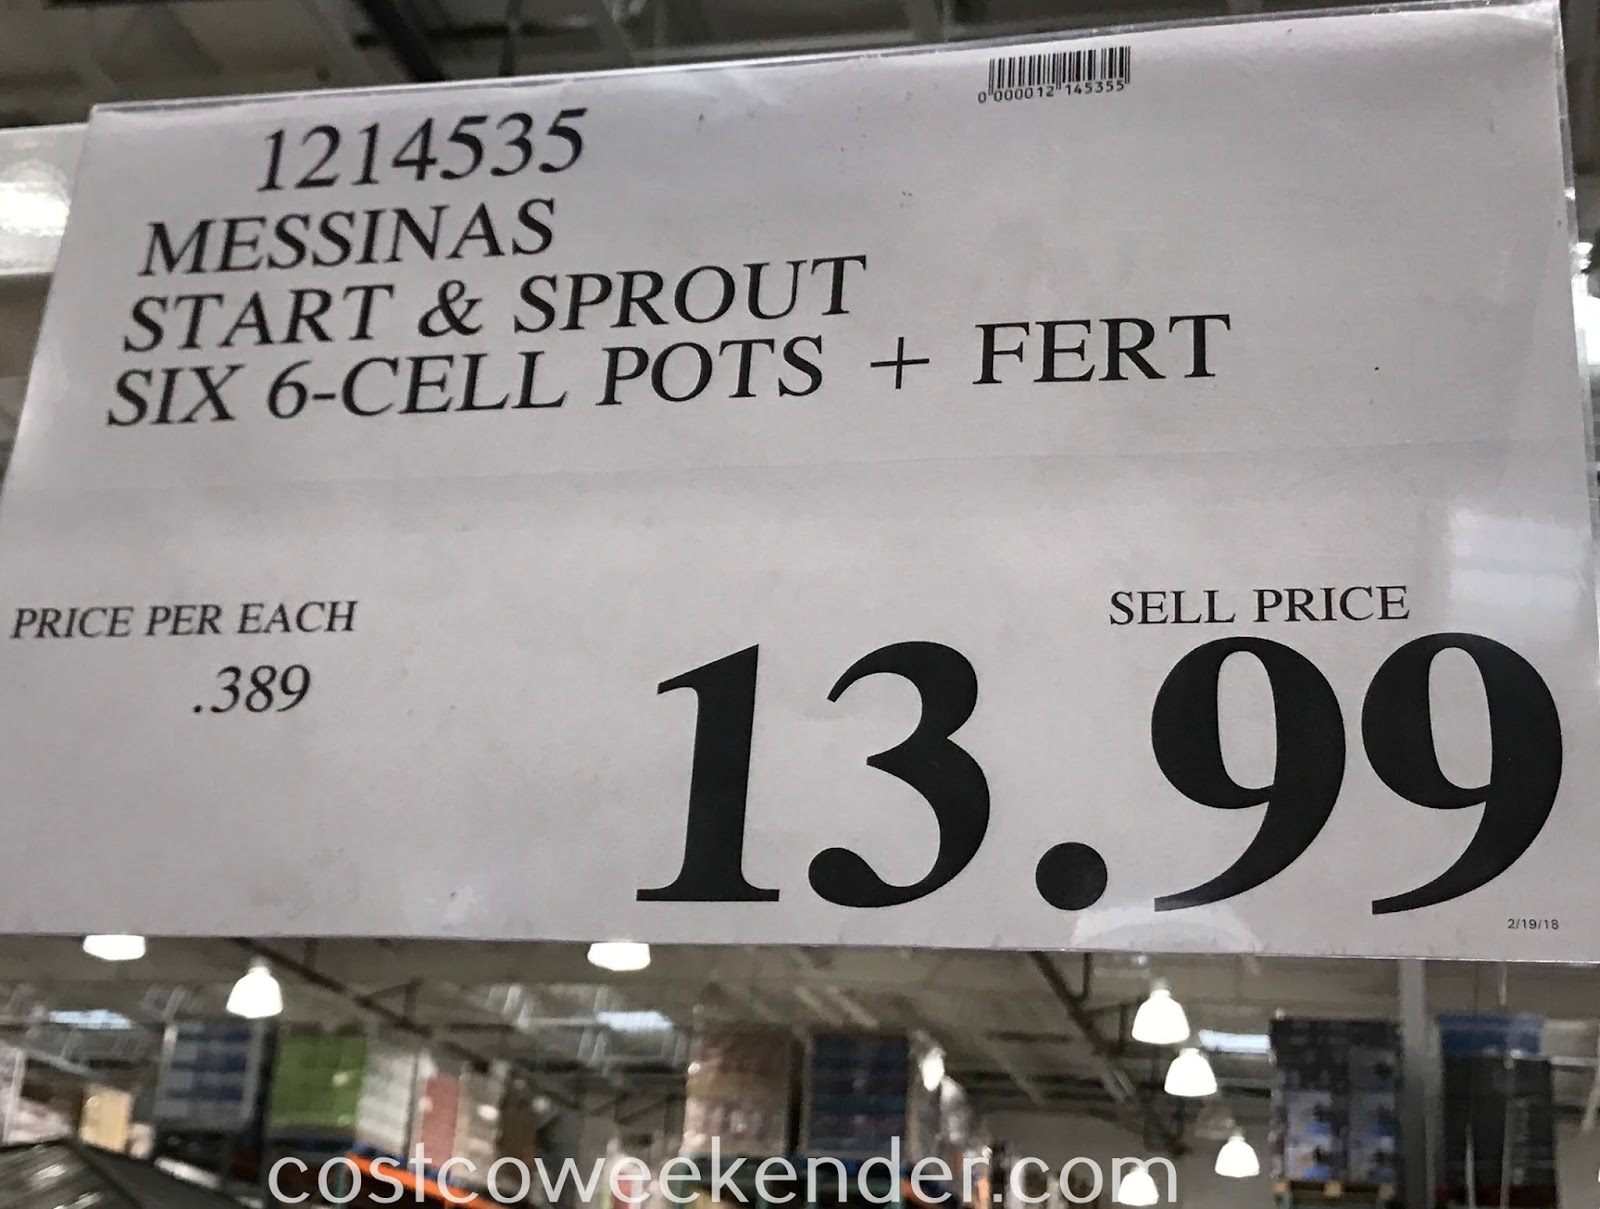 Deal for the Messinas Start and Sprout at Costco